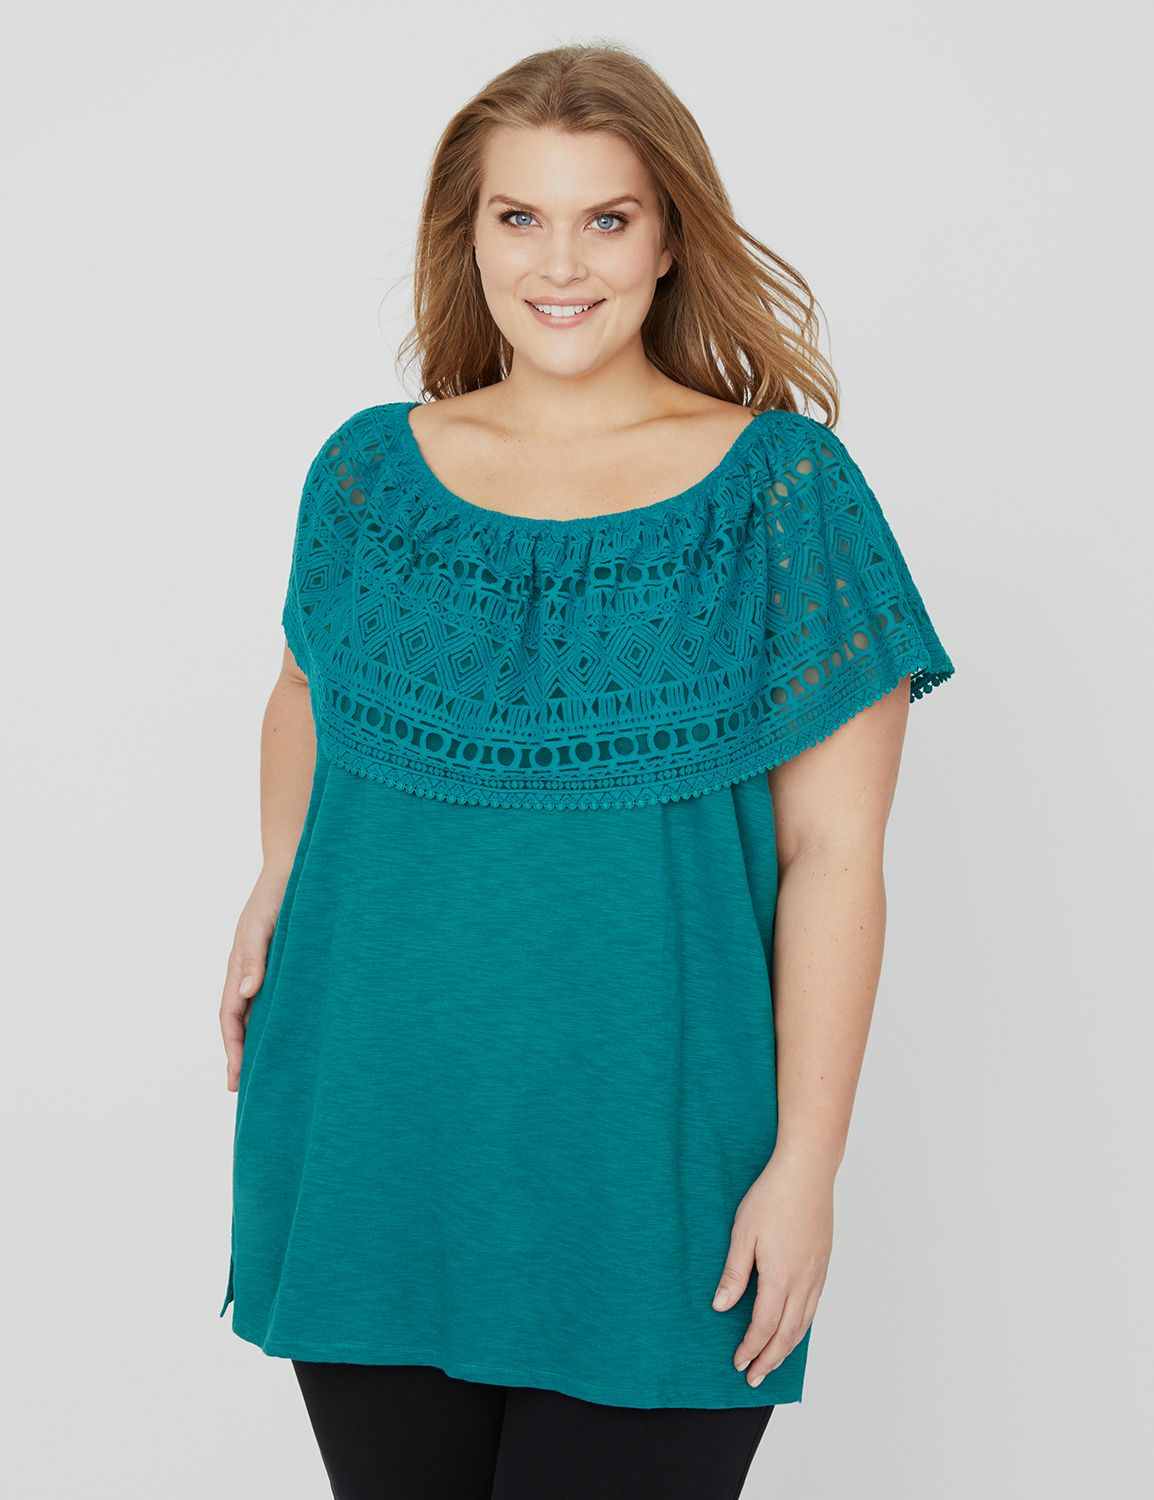 Shaded Cove Off-the-Shoulder Top 1088202 BURNOUT FLOUNCE OFF SHOULDE MP-300101844